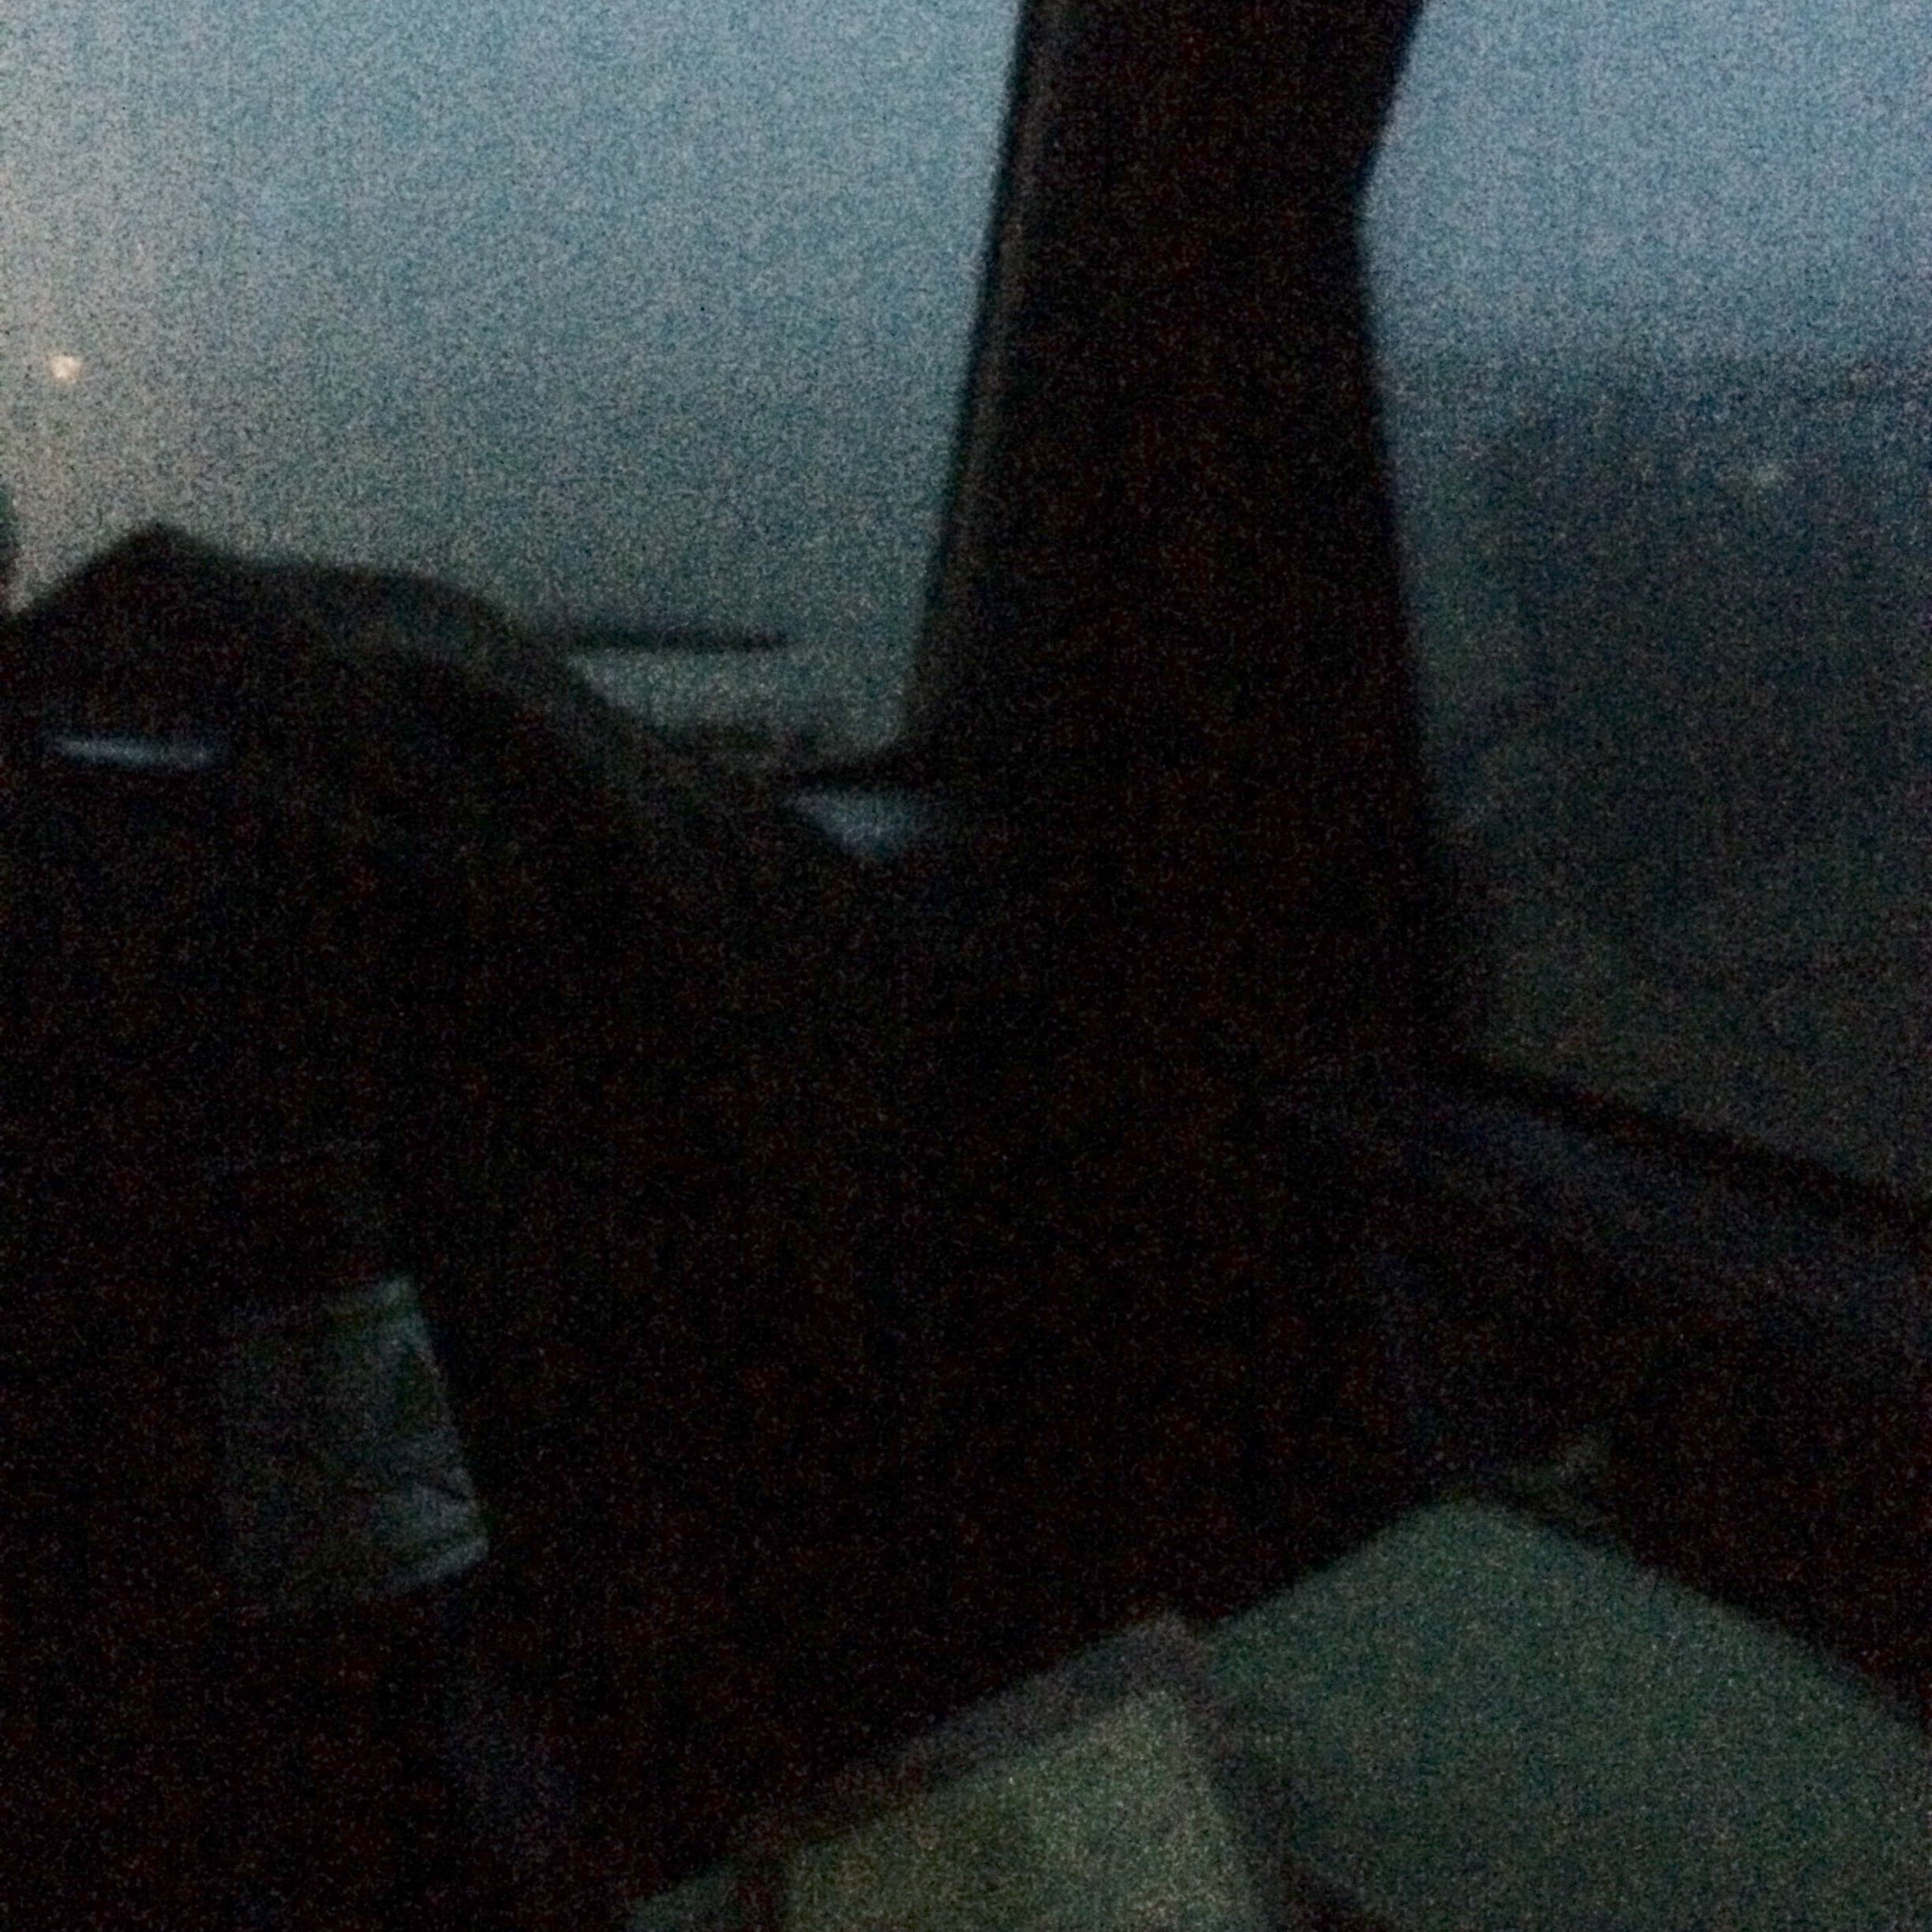 A view from the van.